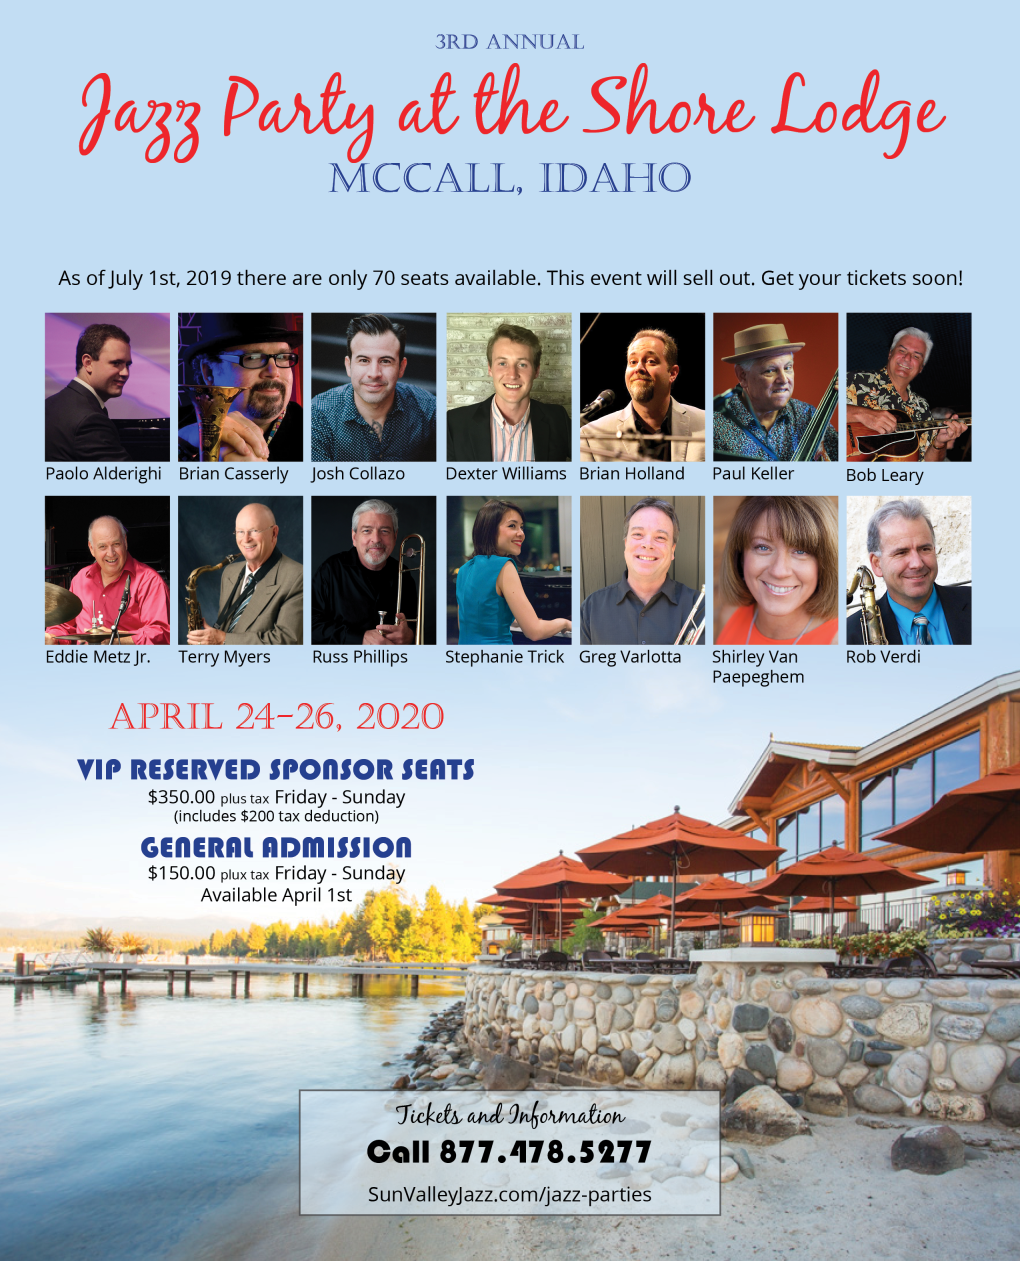 Jazz Party at the Shore Lodge McCall, Idaho